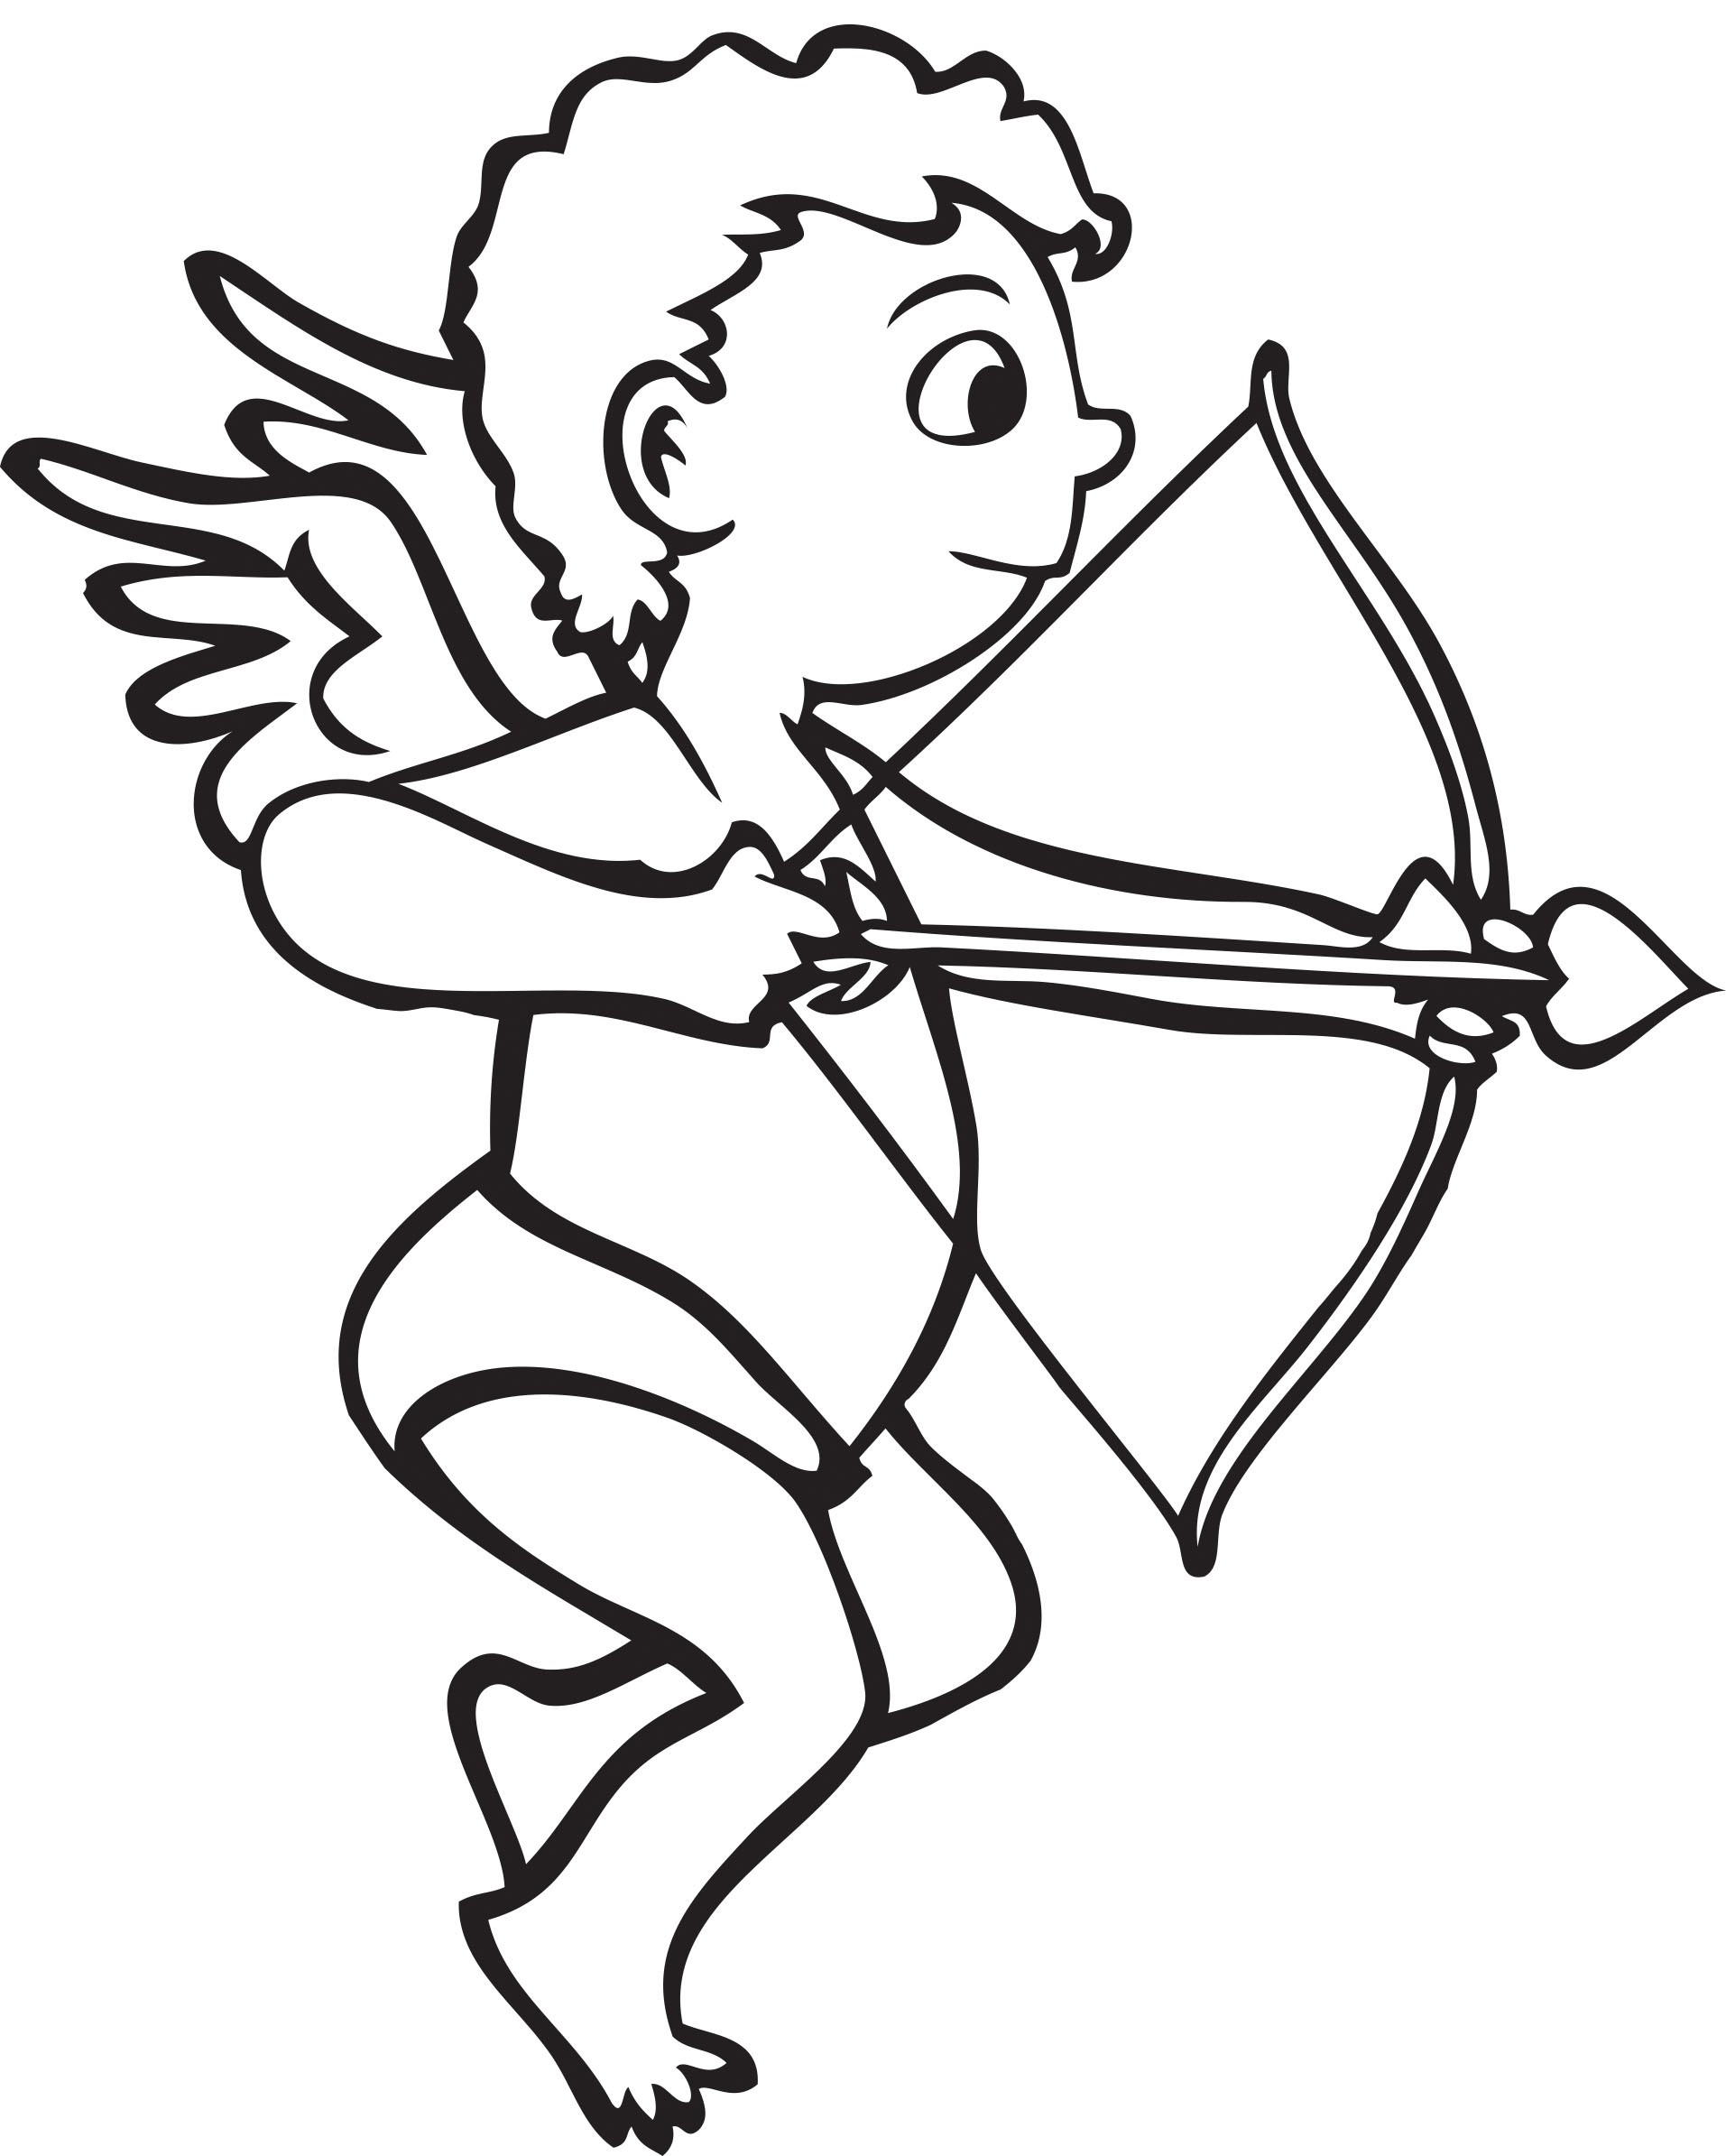 banner royalty free stock Cupid clipart black and white. Image of paintings